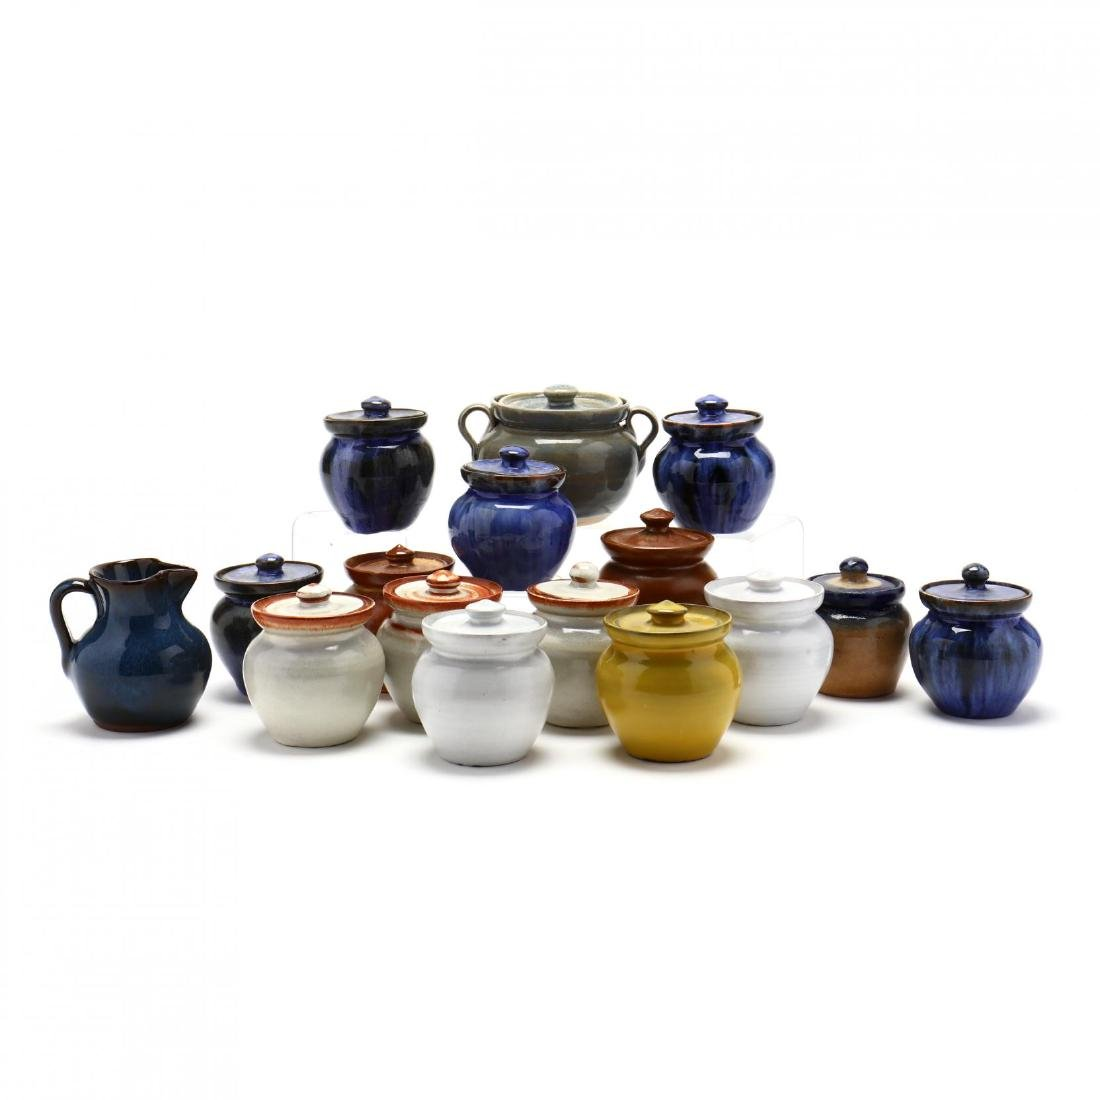 A Collection of Sugar Bowls